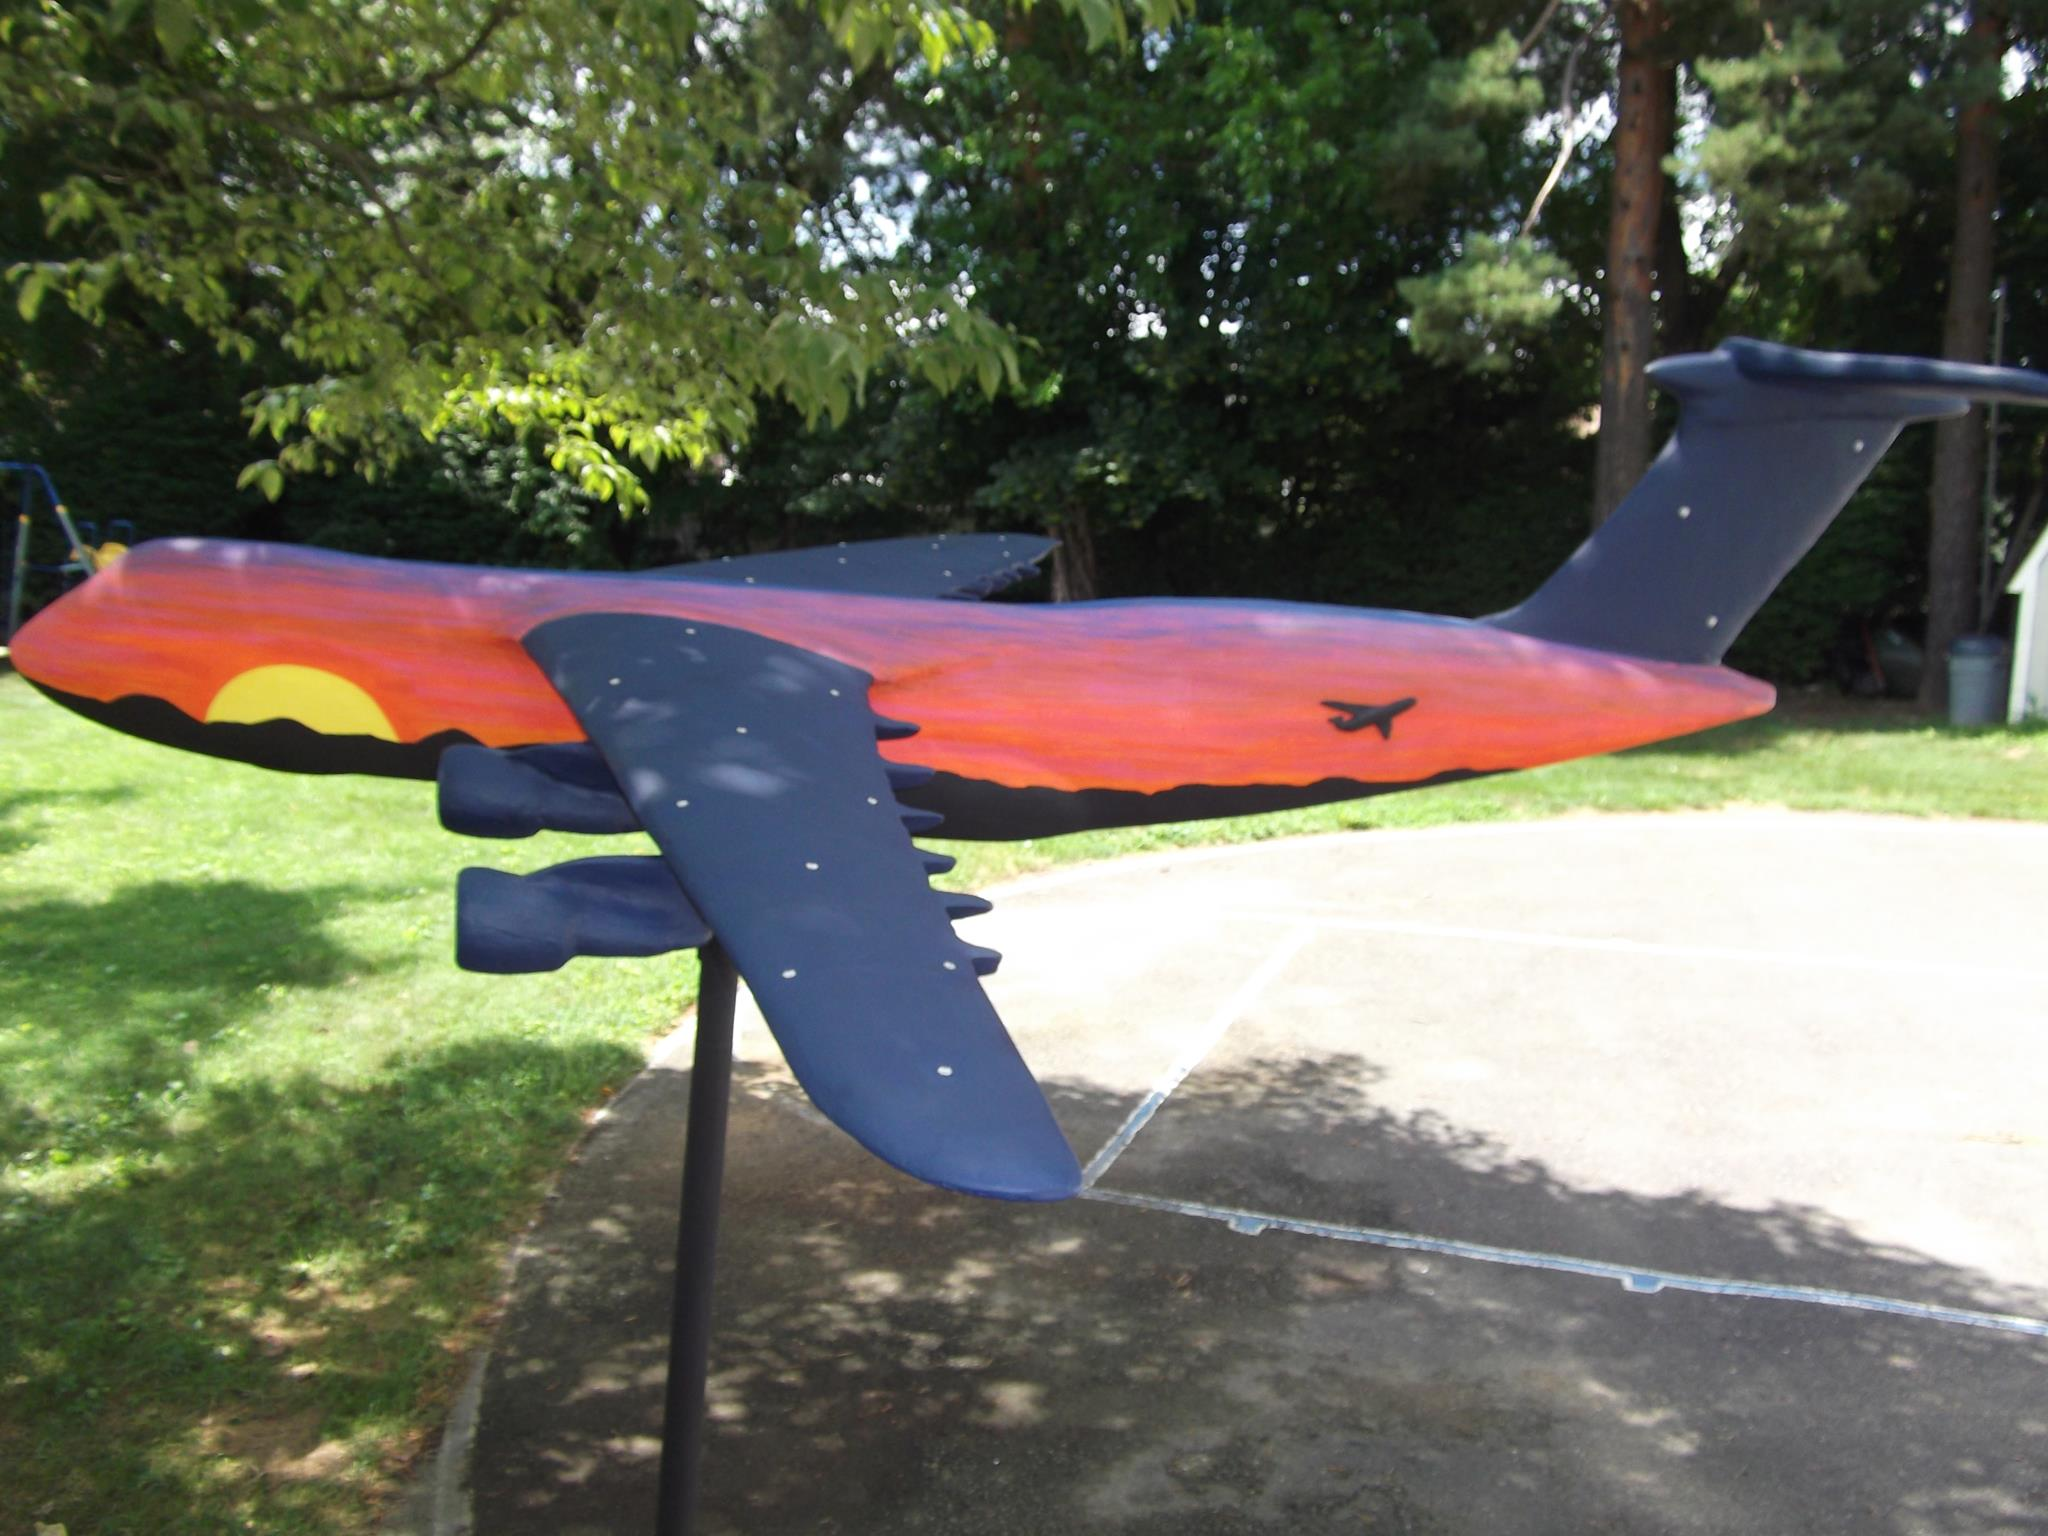 Sunset airplane model close up side